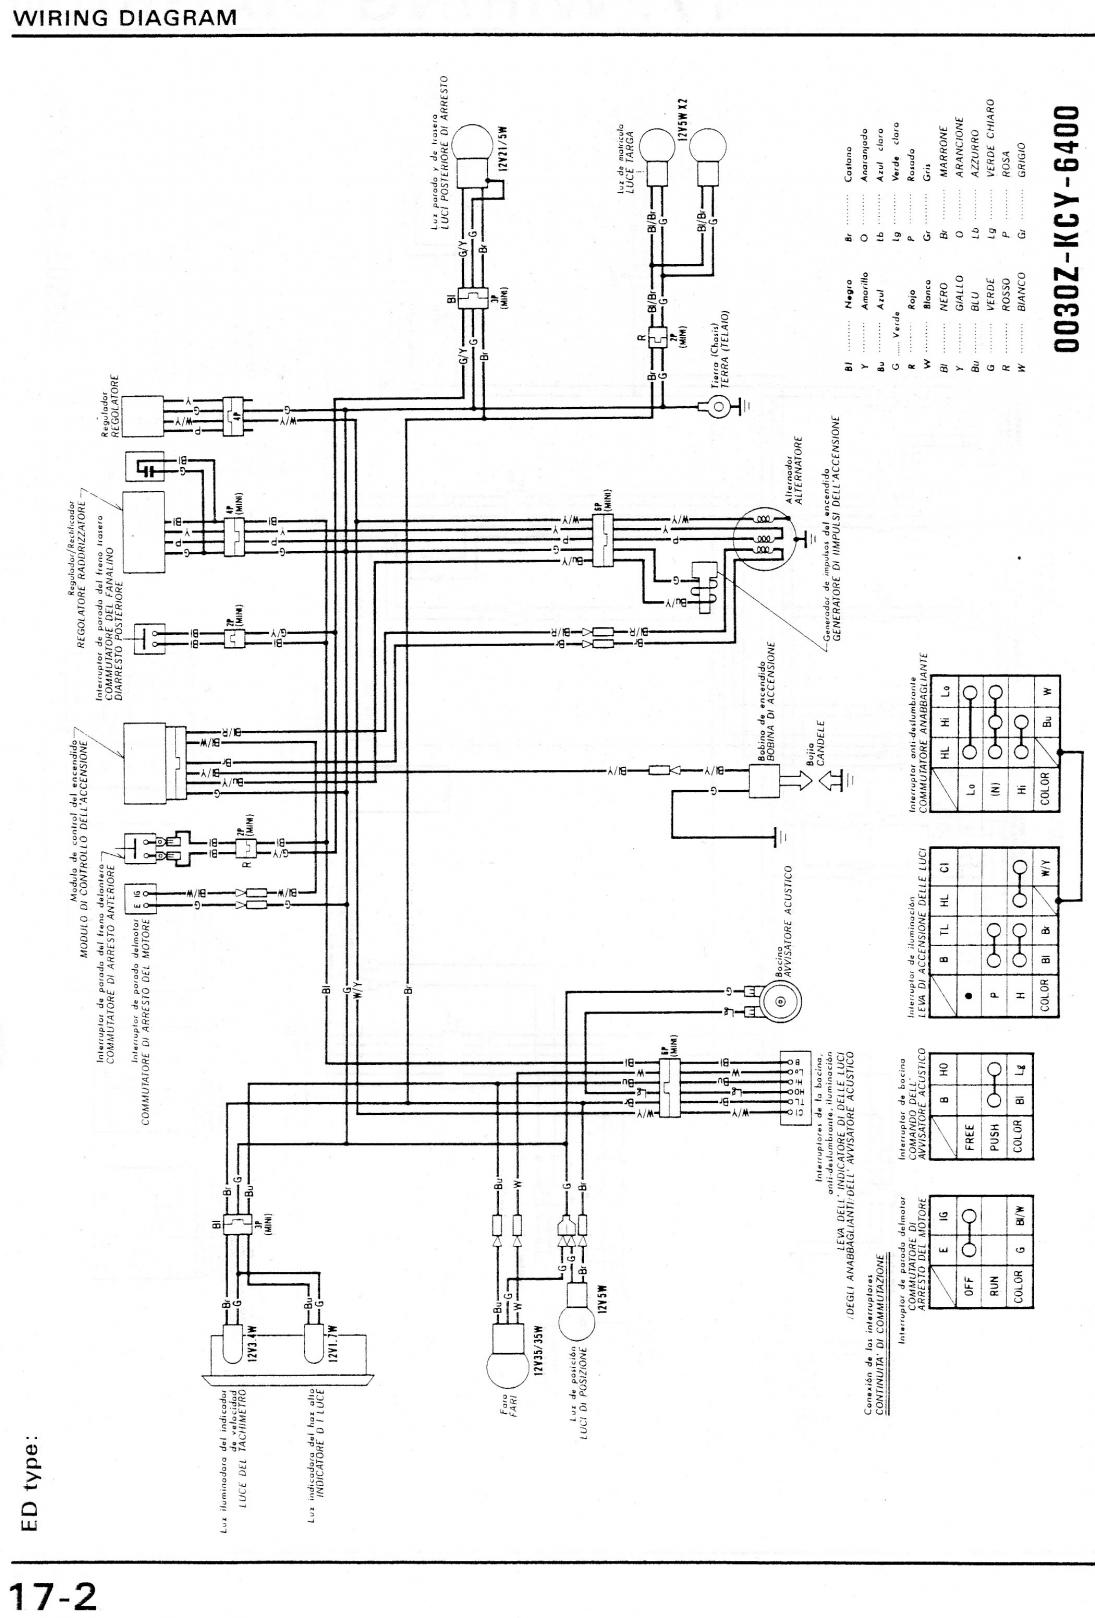 whizzer wiring diagram